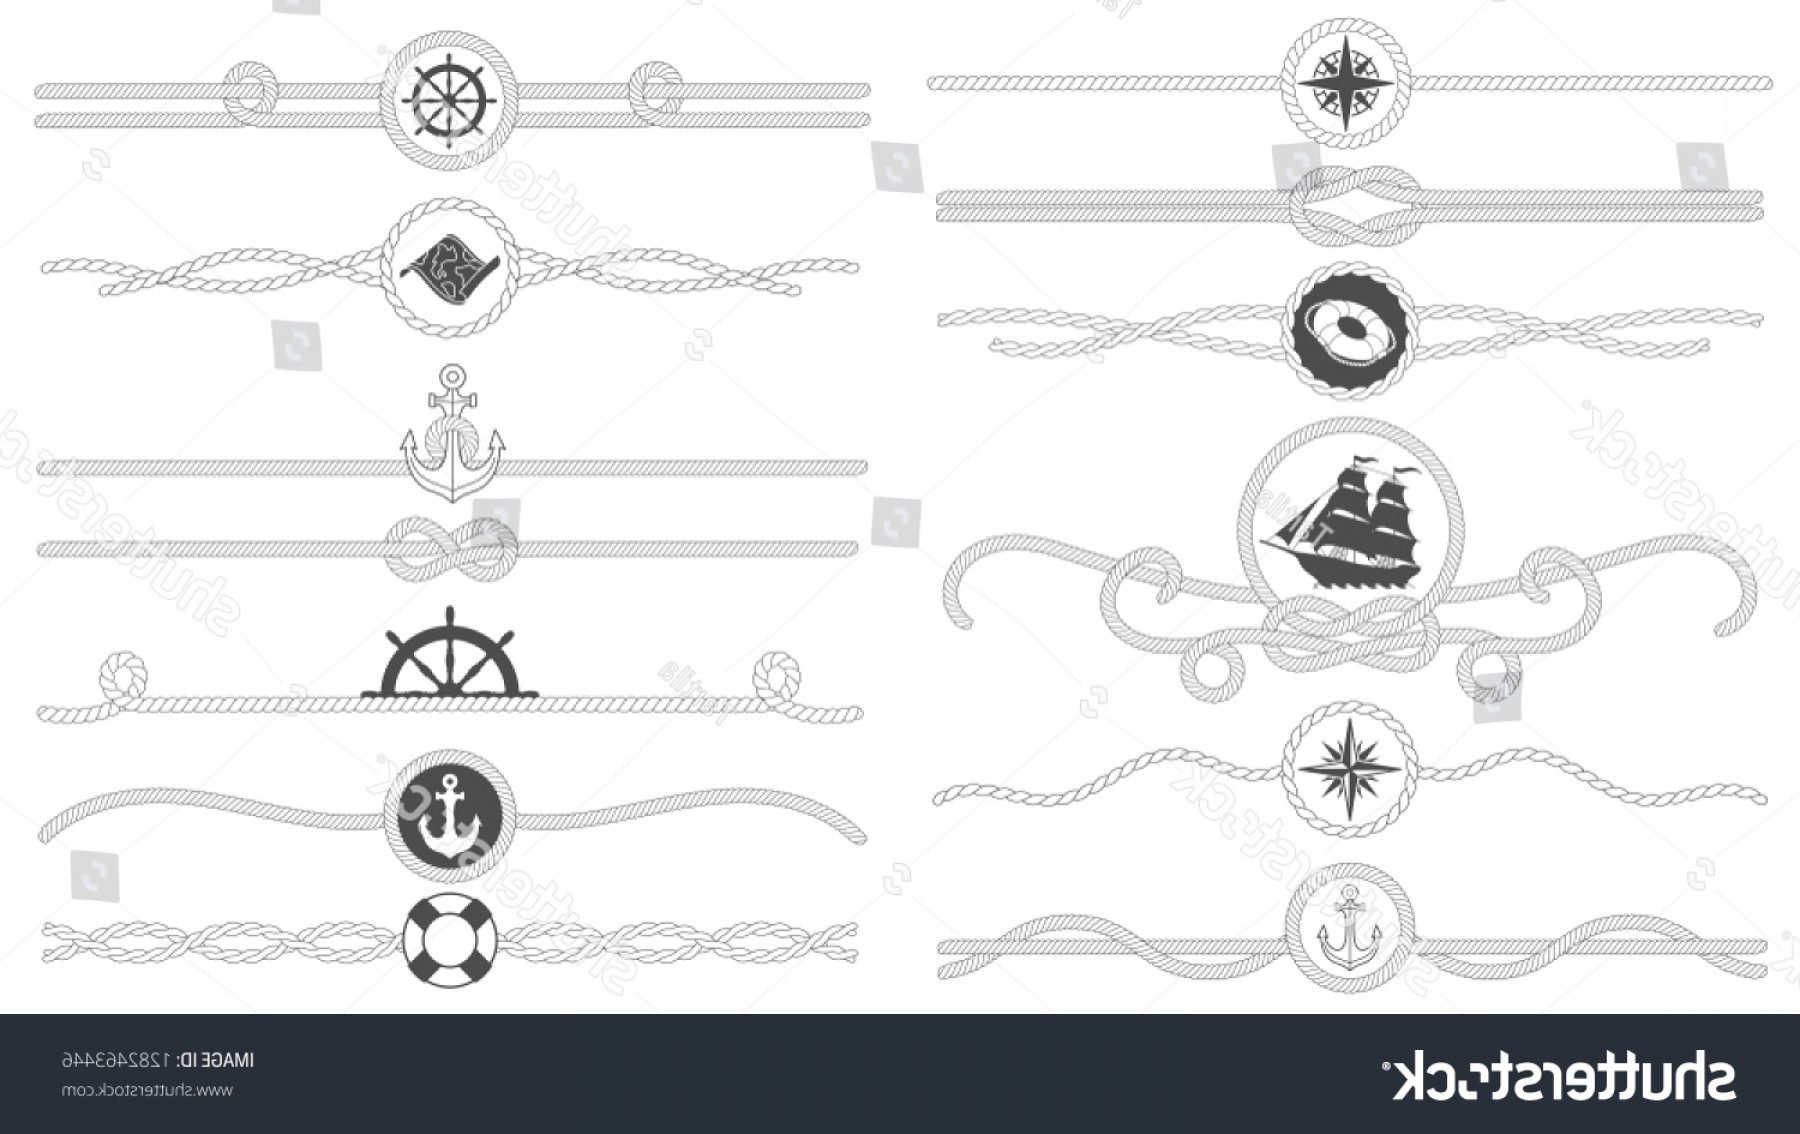 Nautical Text Divider Vector: Nautical Rope Border Tied Ropes Line